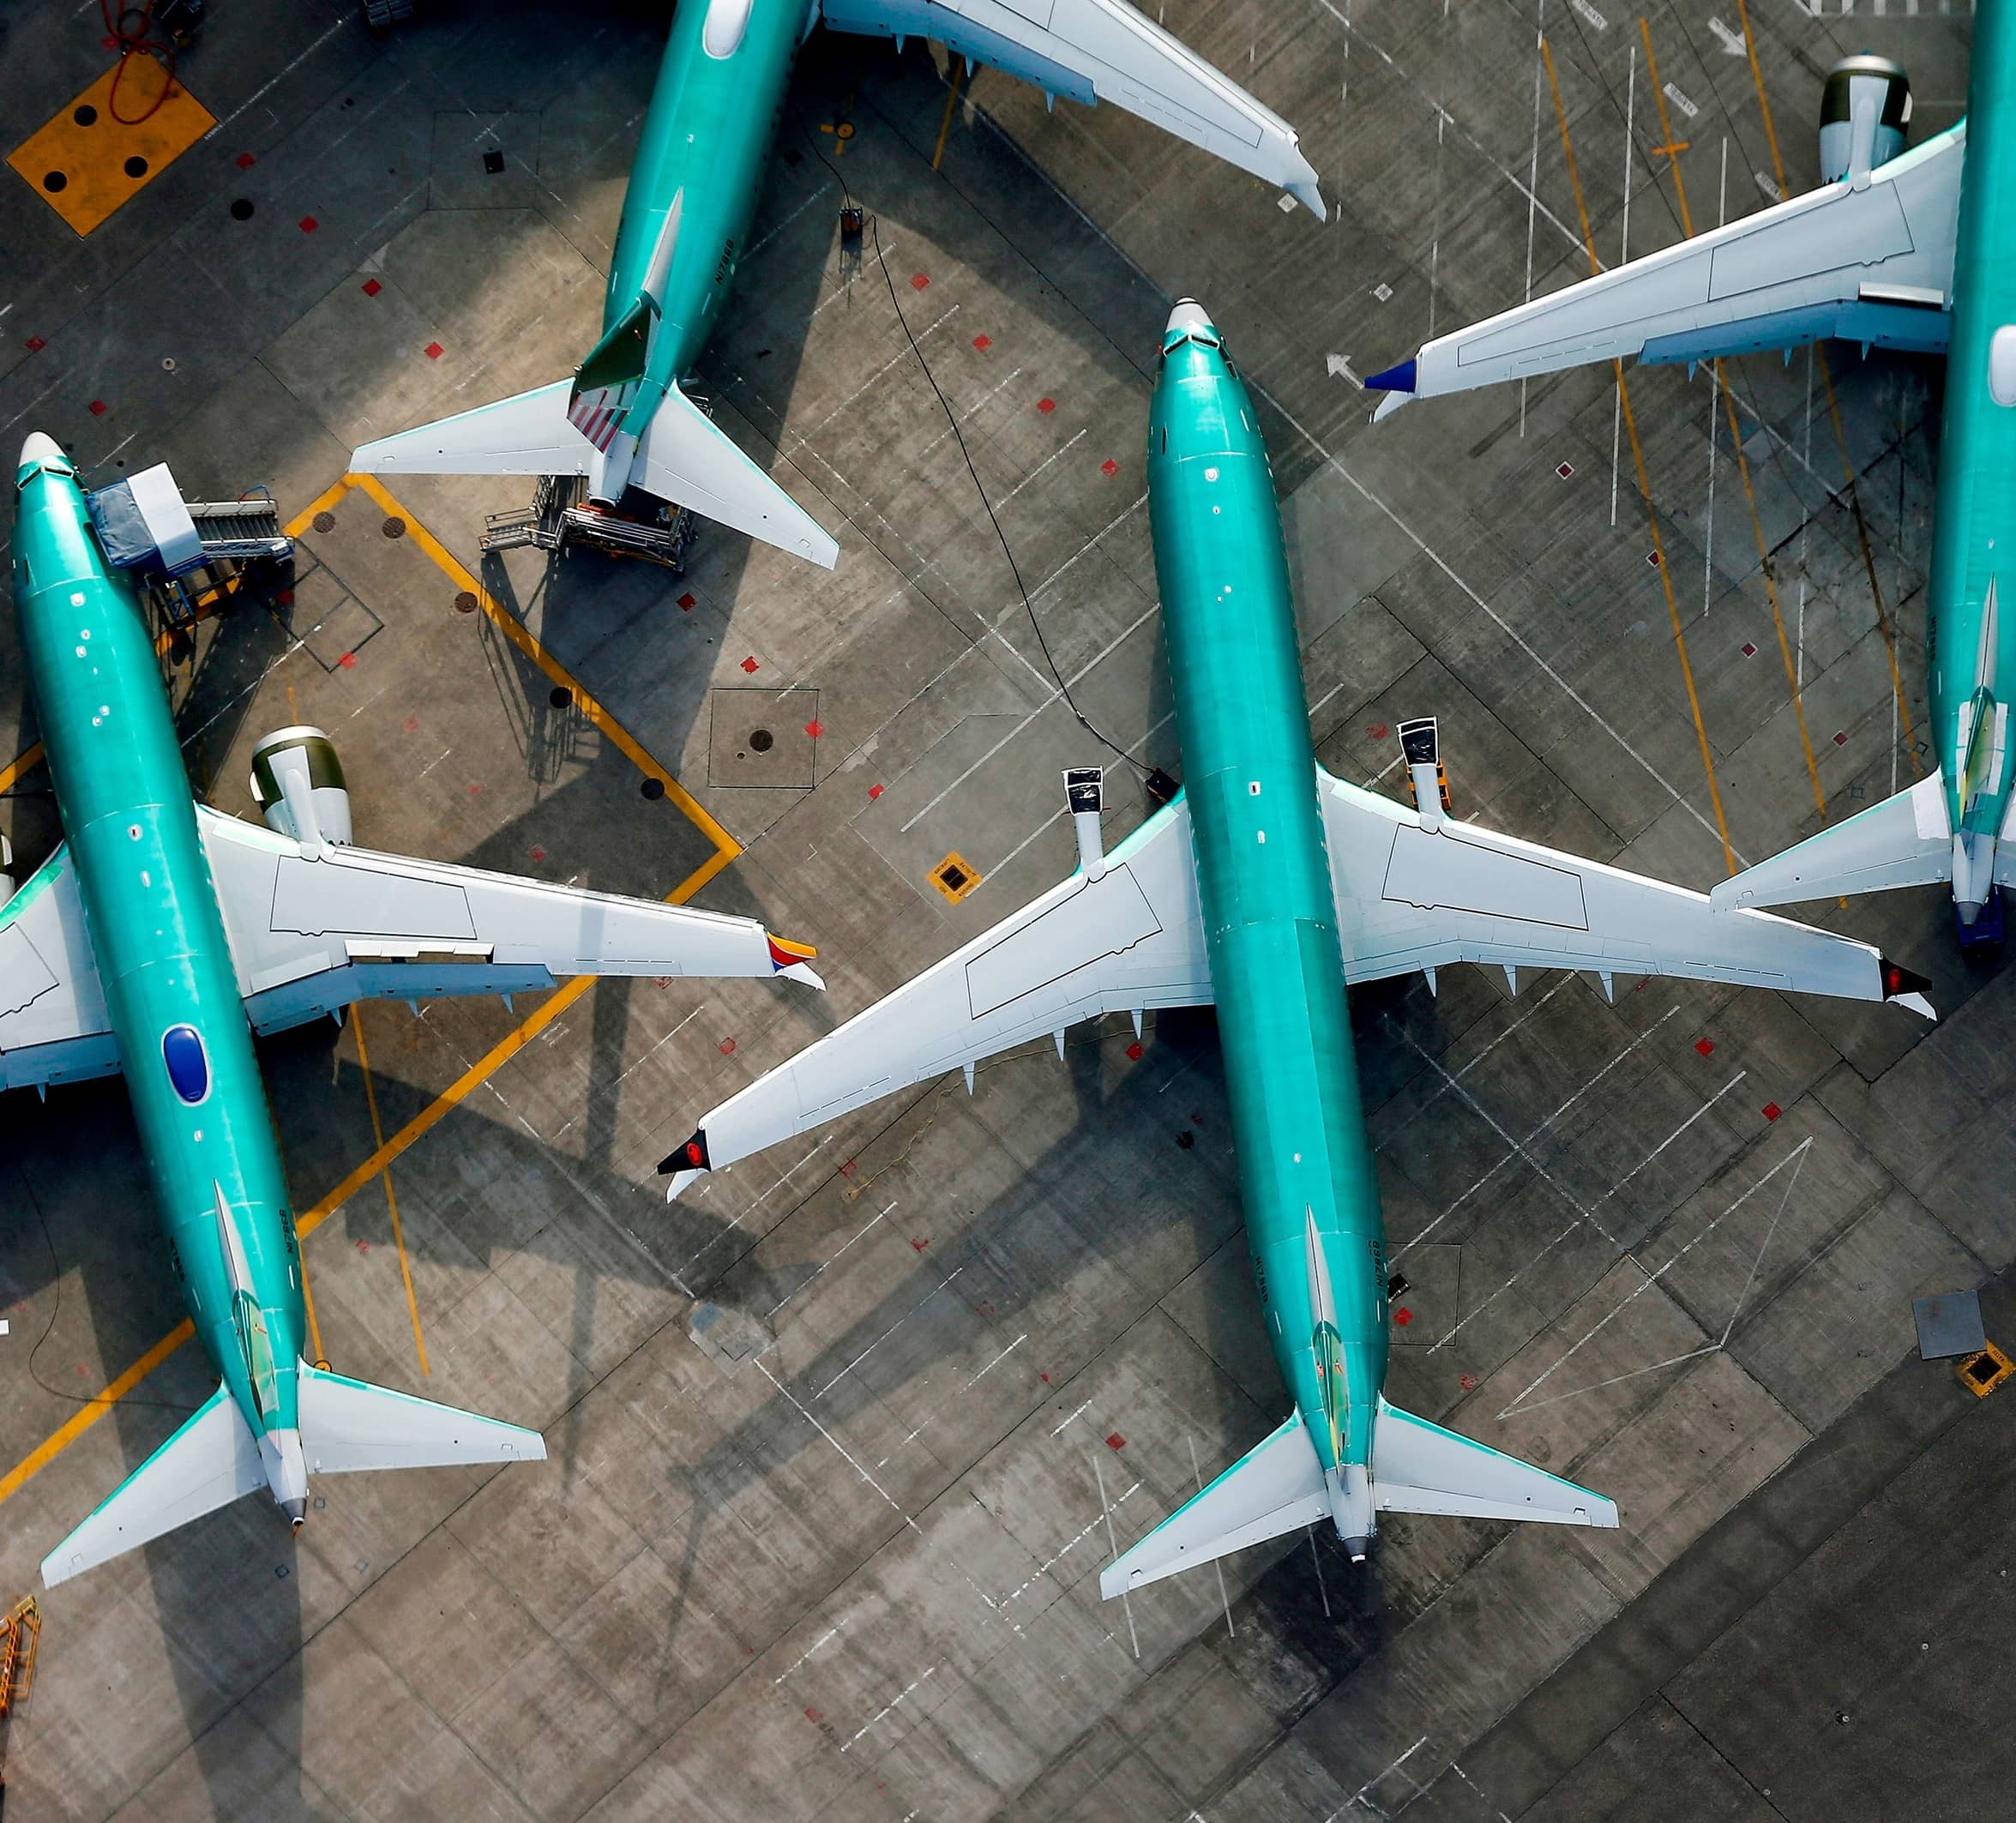 US Moves One Steo Closer To Letting The Boeing 737 Max Fly